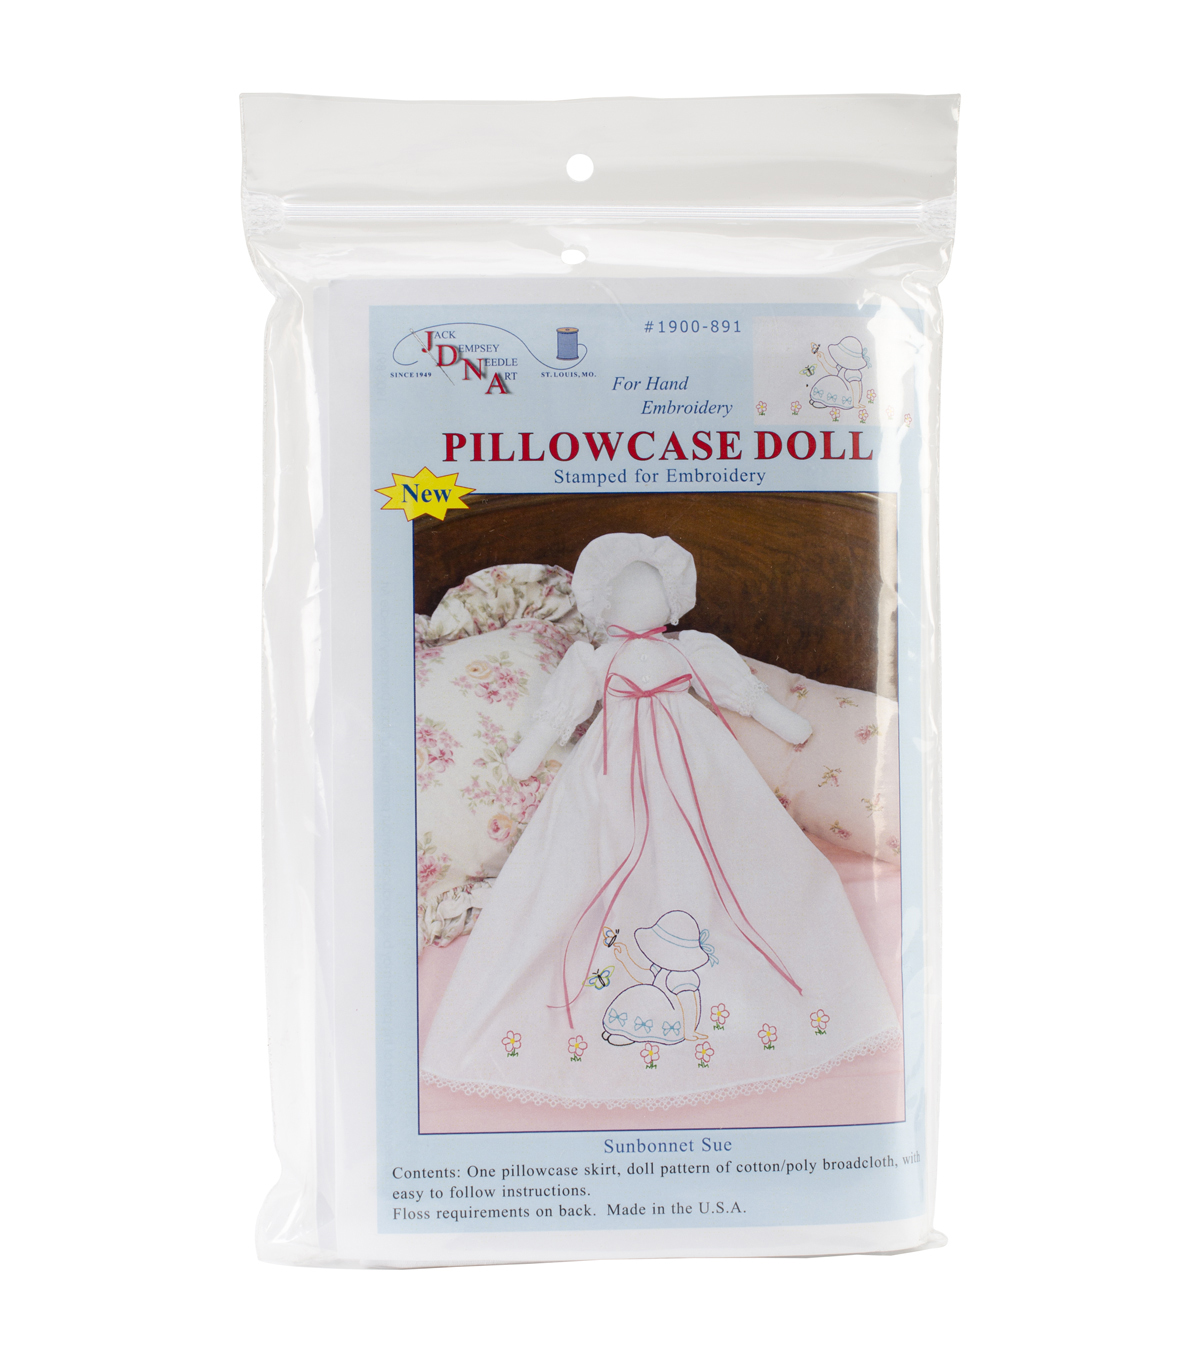 Jack Dempsey Stamped Pillowcase Doll Kit Sunbonnet Sue White